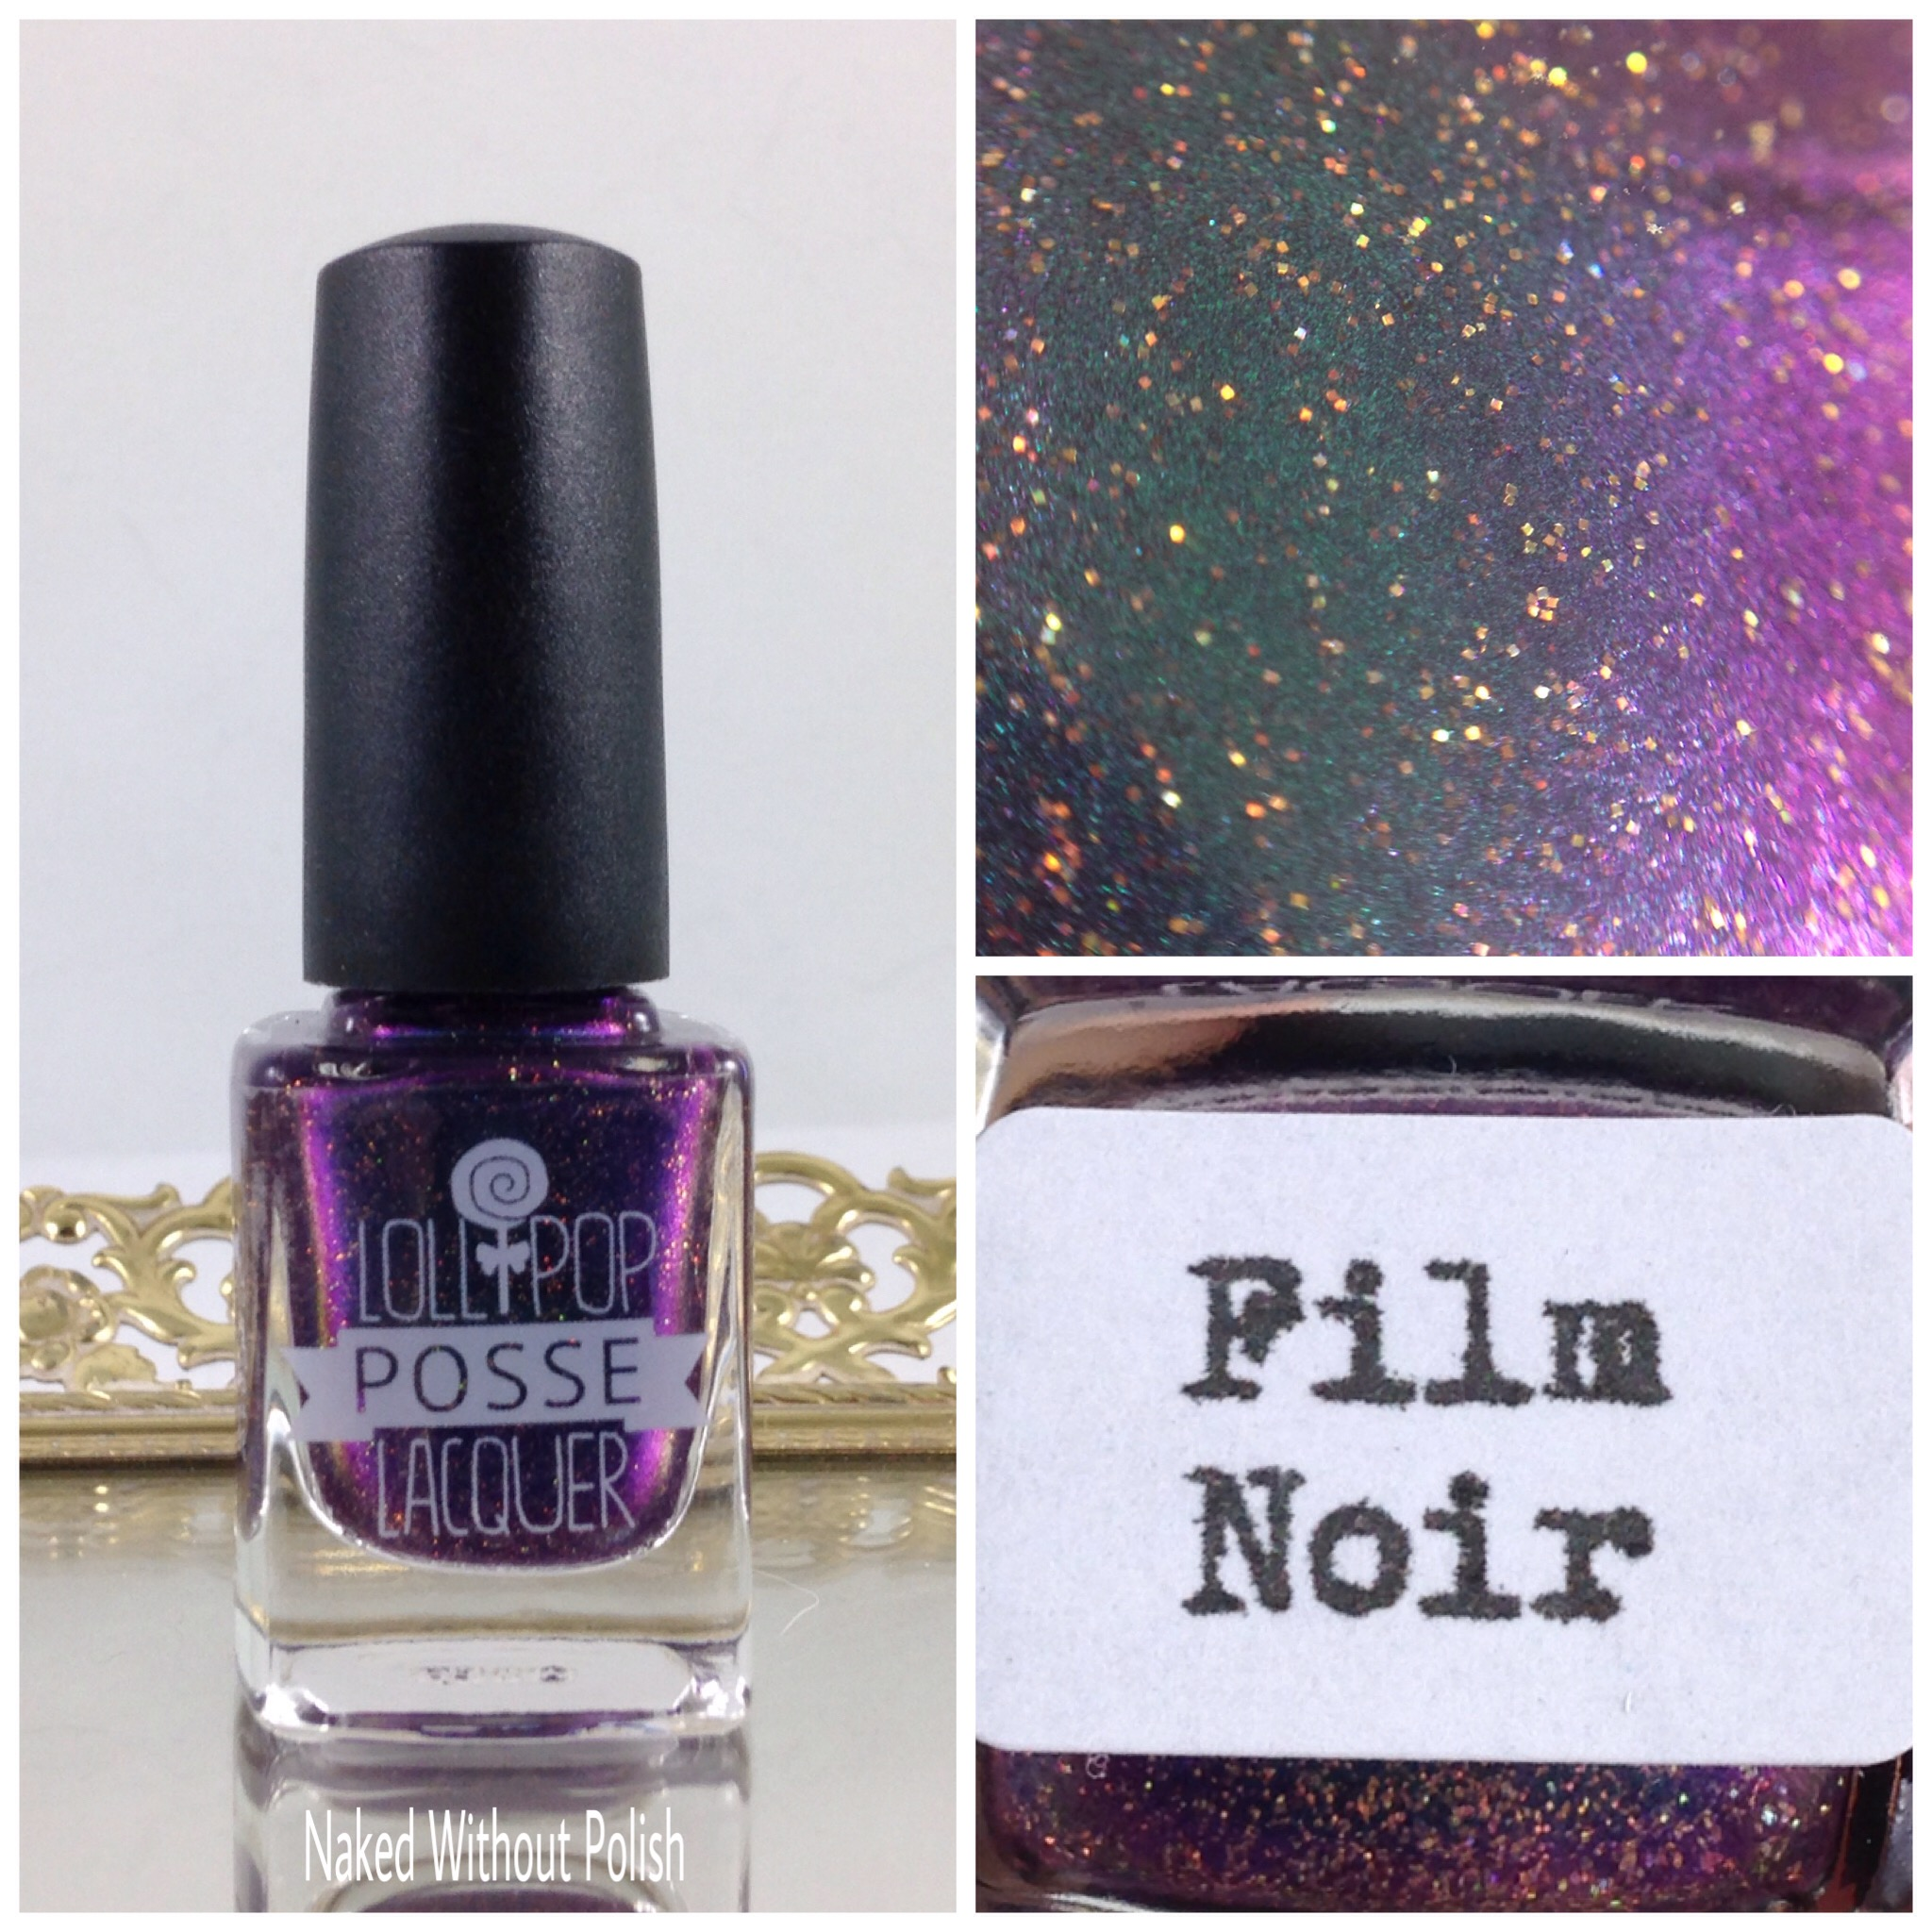 Polish-Pickup-Lollipop-Posse-Lacquer-Film-Noir-1